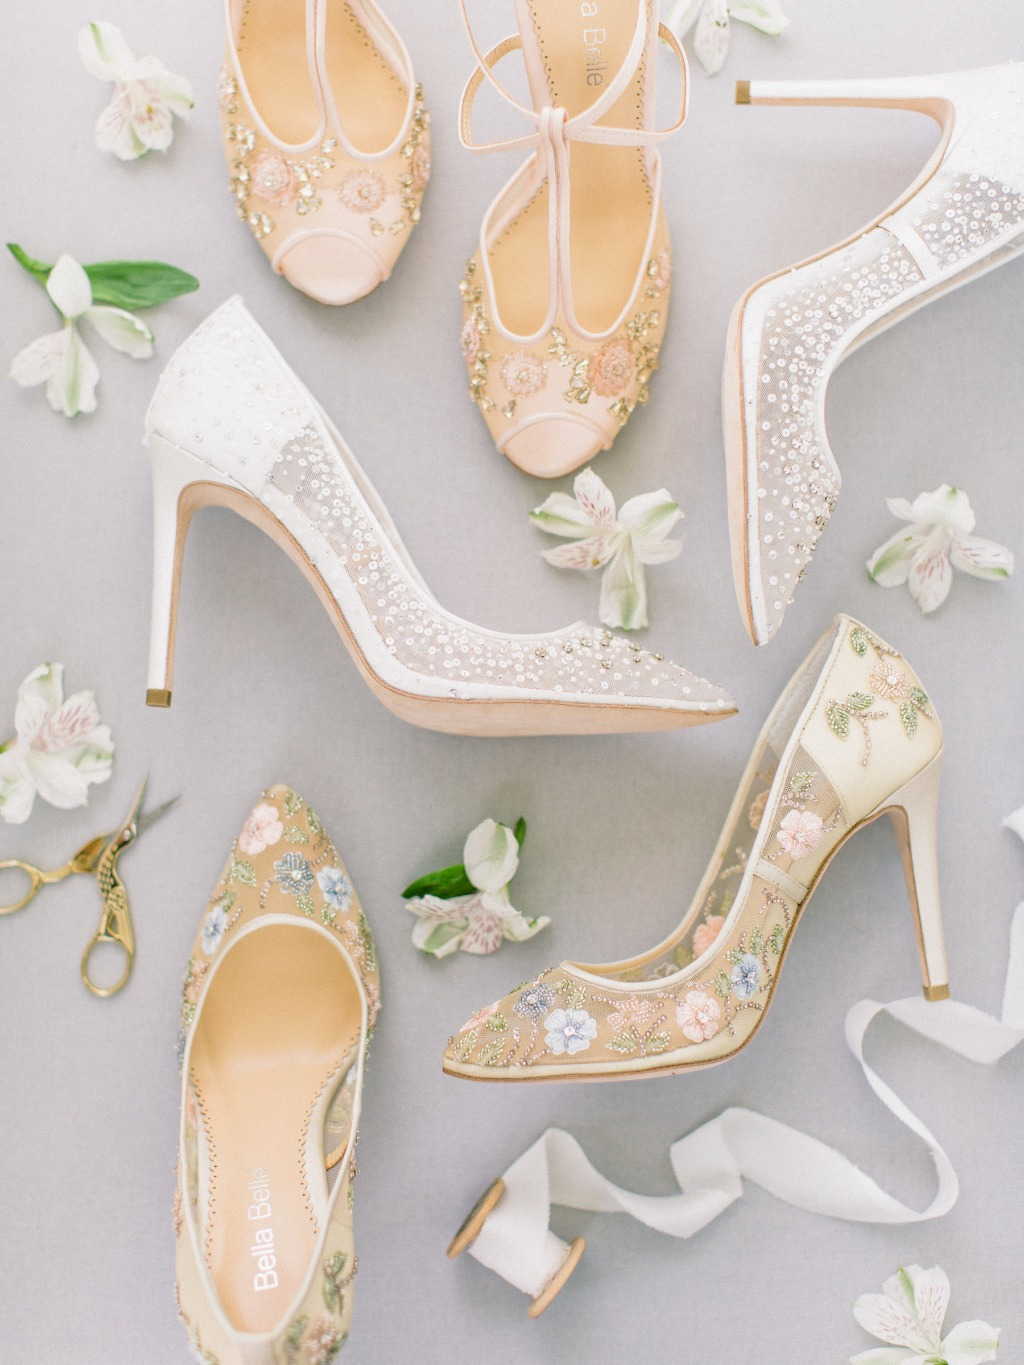 Our Bella Belle Euphoria 2018 Collection features bridal heels, flats, and booties that are irresistibly feminine and handcrafted with